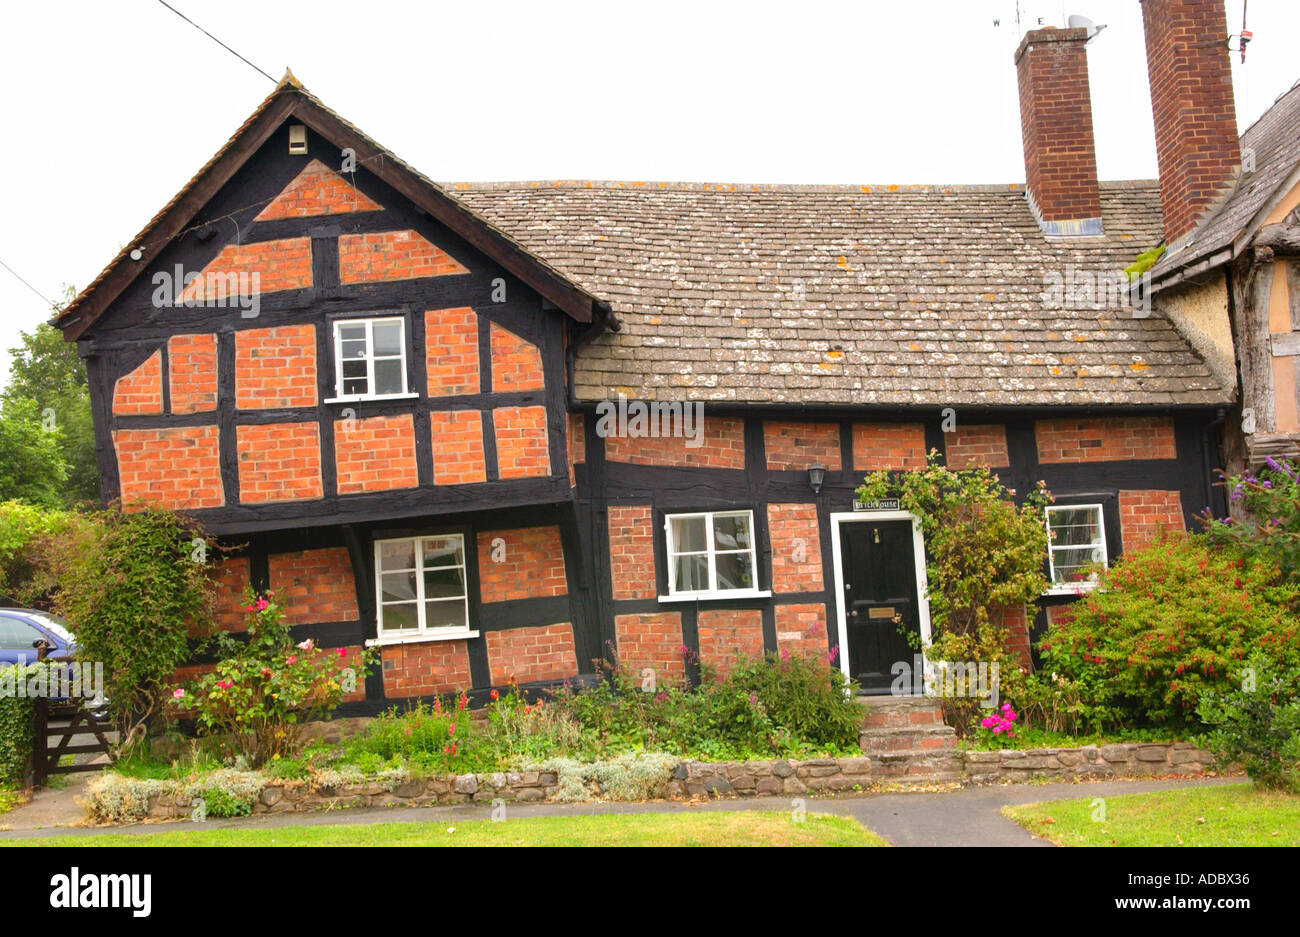 Timber framed medieval 15th century house with brick infill panels at Pembridge Herefordshire England UK - Stock Image